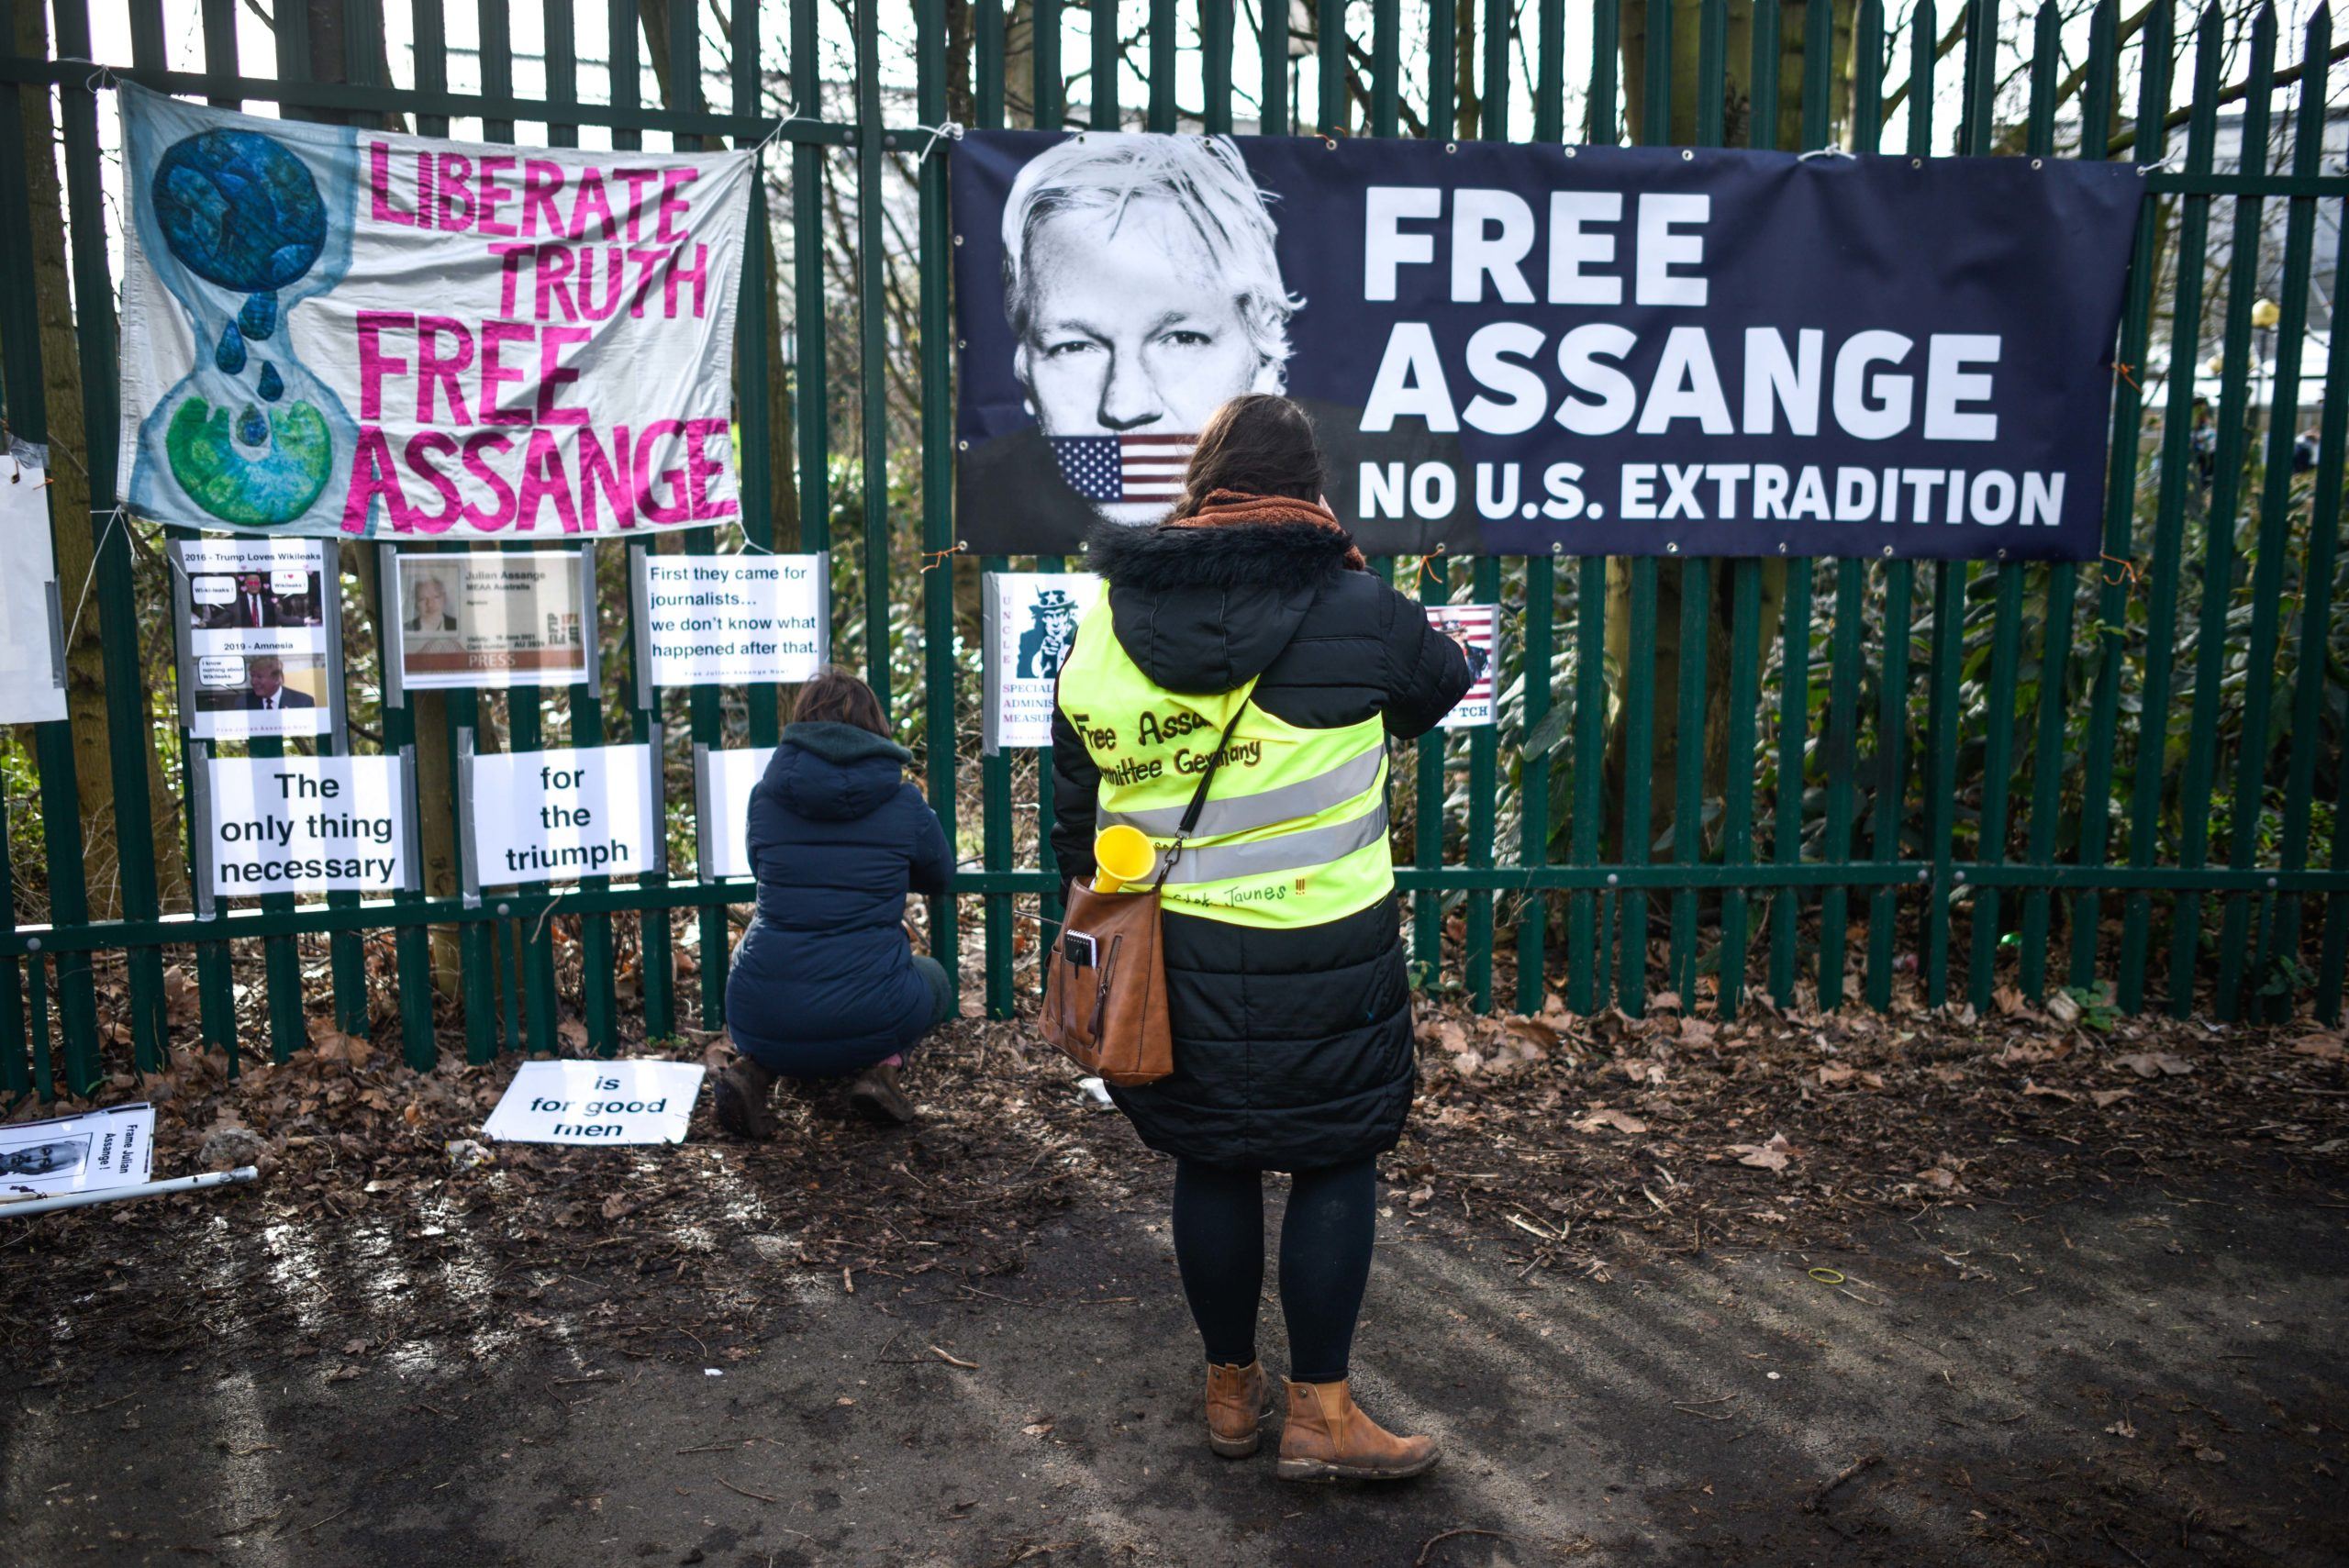 Supporters of WikiLeaks founder Julian Assange demonstrate outside Woolwich Crown Court prior to his extradition hearing on February 25, 2020 in London, England. (Peter Summers/Getty Images)